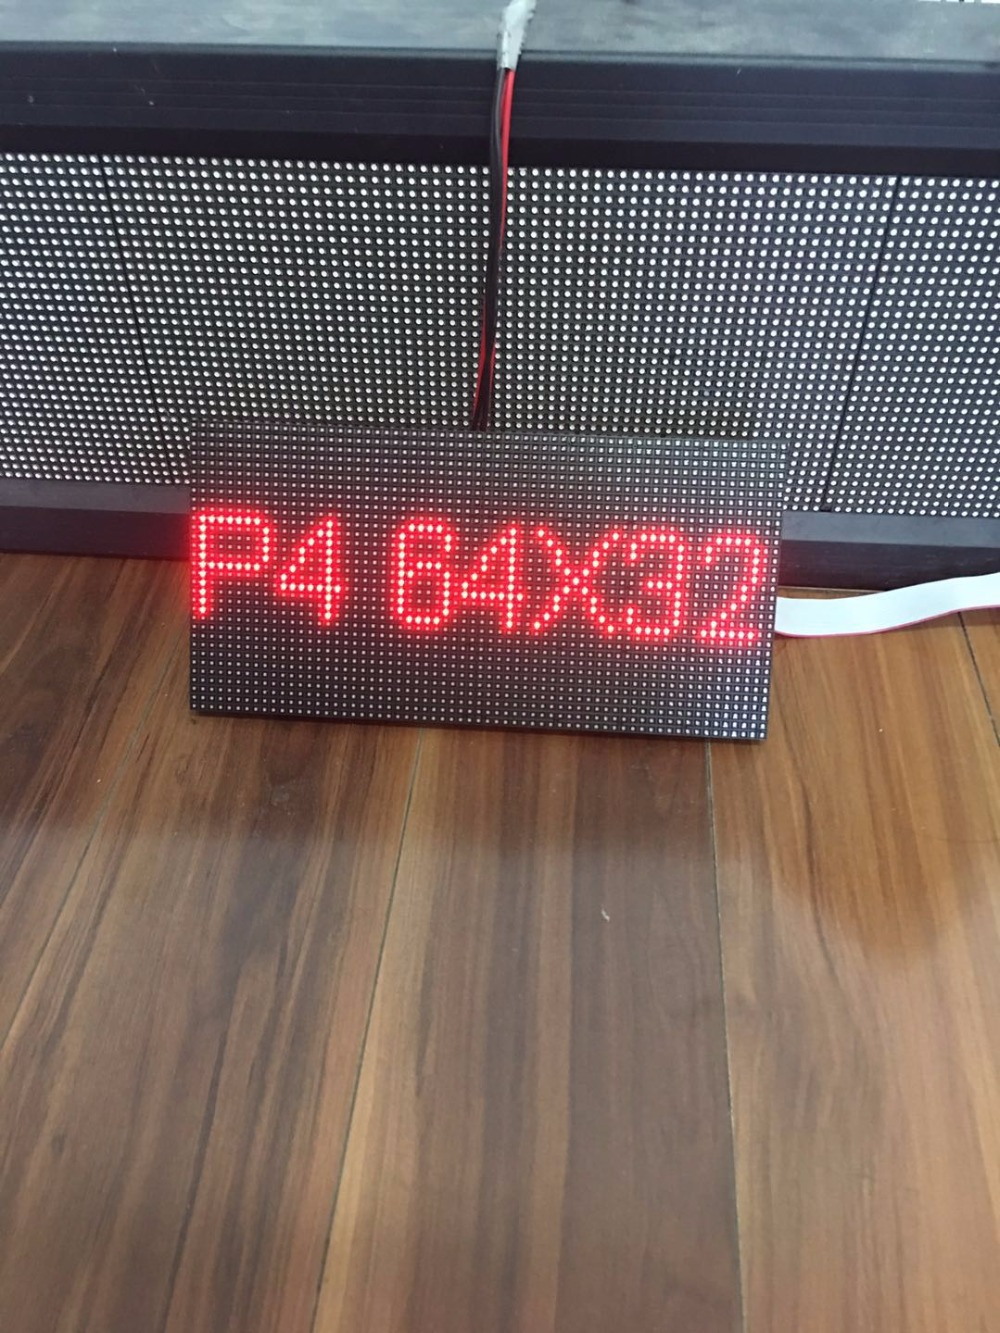 Купить с кэшбэком Free Shipping kaler 256*128mm 64*32 pixel 1/16 Scan Indoor full color 3in1 SMD RGB full color P4 led display screen module panel